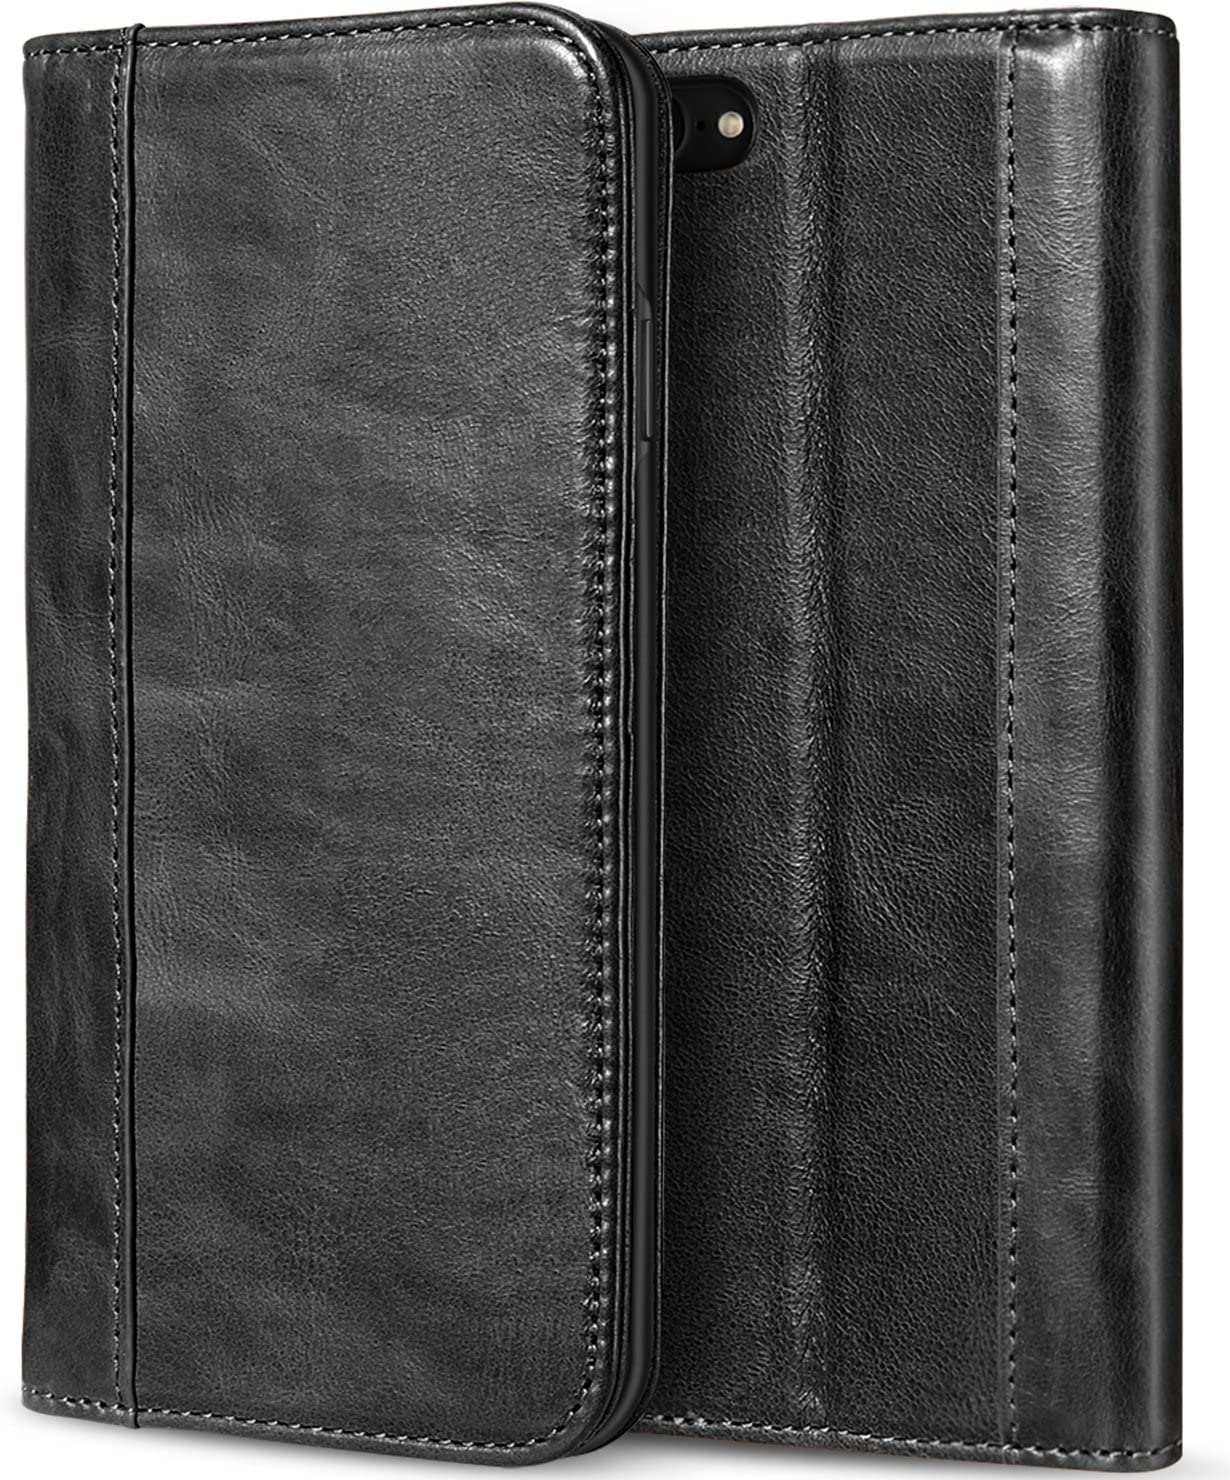 ProCase Wallet Case for iPhone SE 2020/ iPhone 8/ iPhone 7, Genuine Leather Case Vintage Wallet Folding Flip Case with Kickstand Card Holder Protective Cover -Black